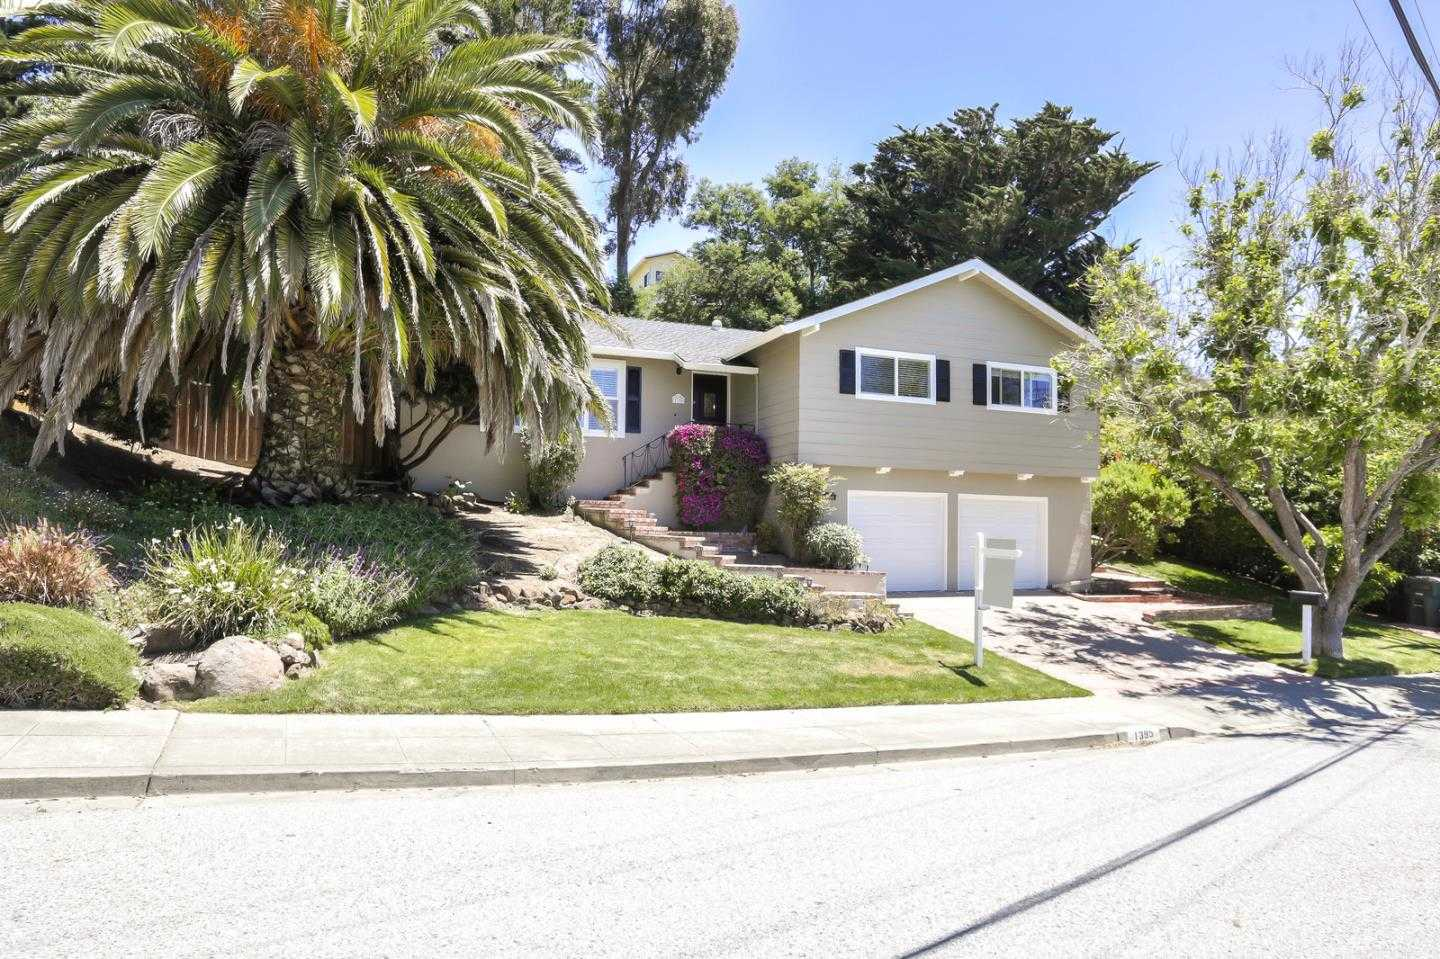 $1,945,000 - 4Br/2Ba -  for Sale in San Mateo